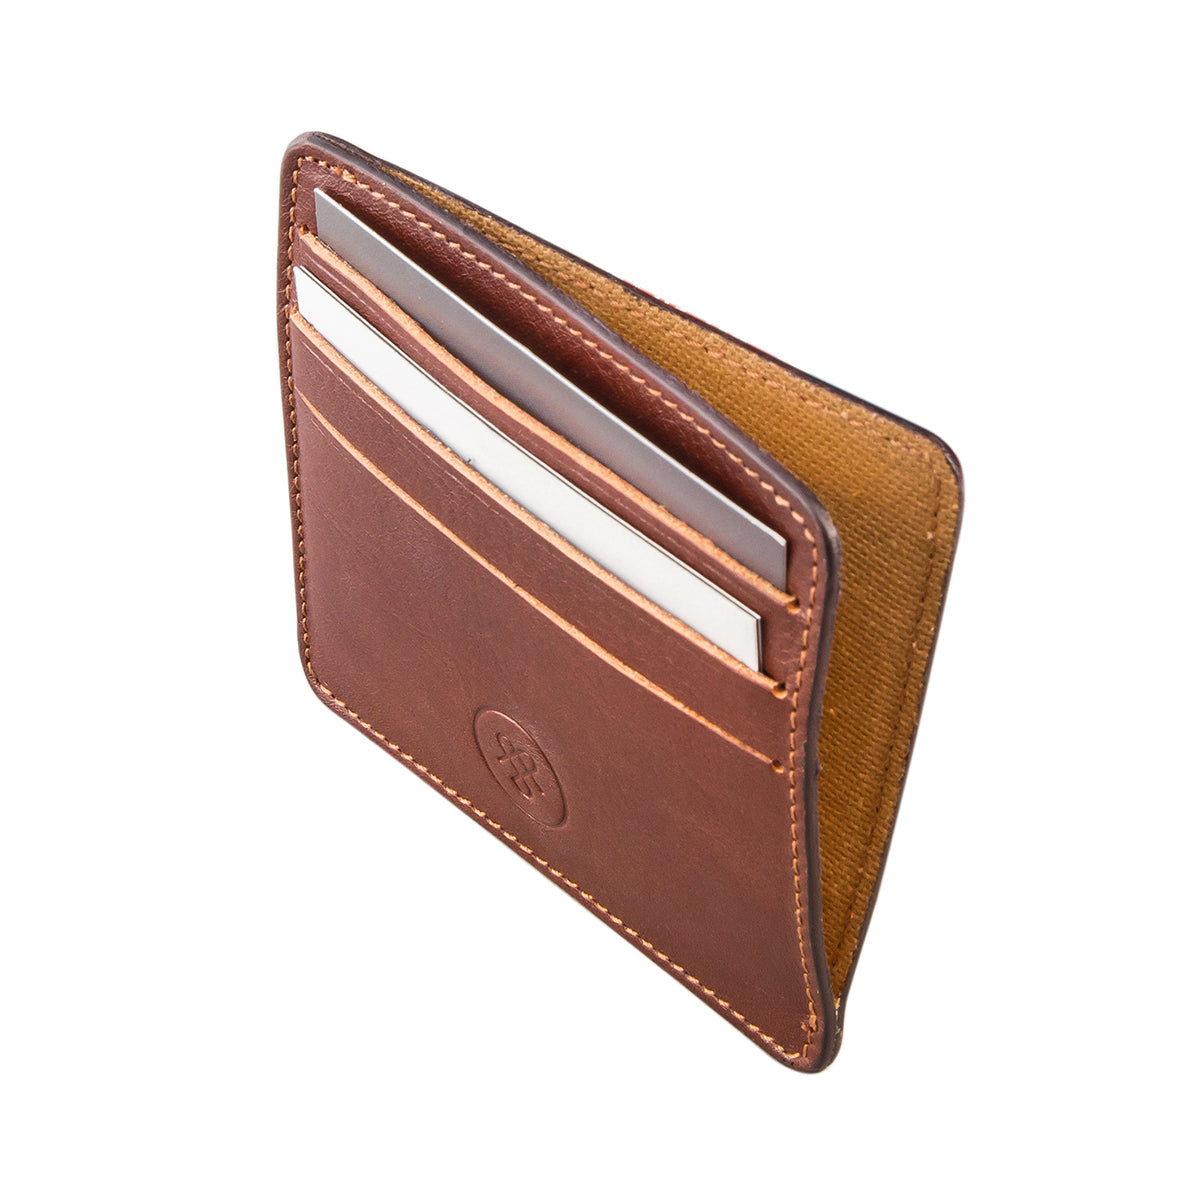 Image 4 of the 'Marco' Chestnut Veg-Tanned Leather Wallet